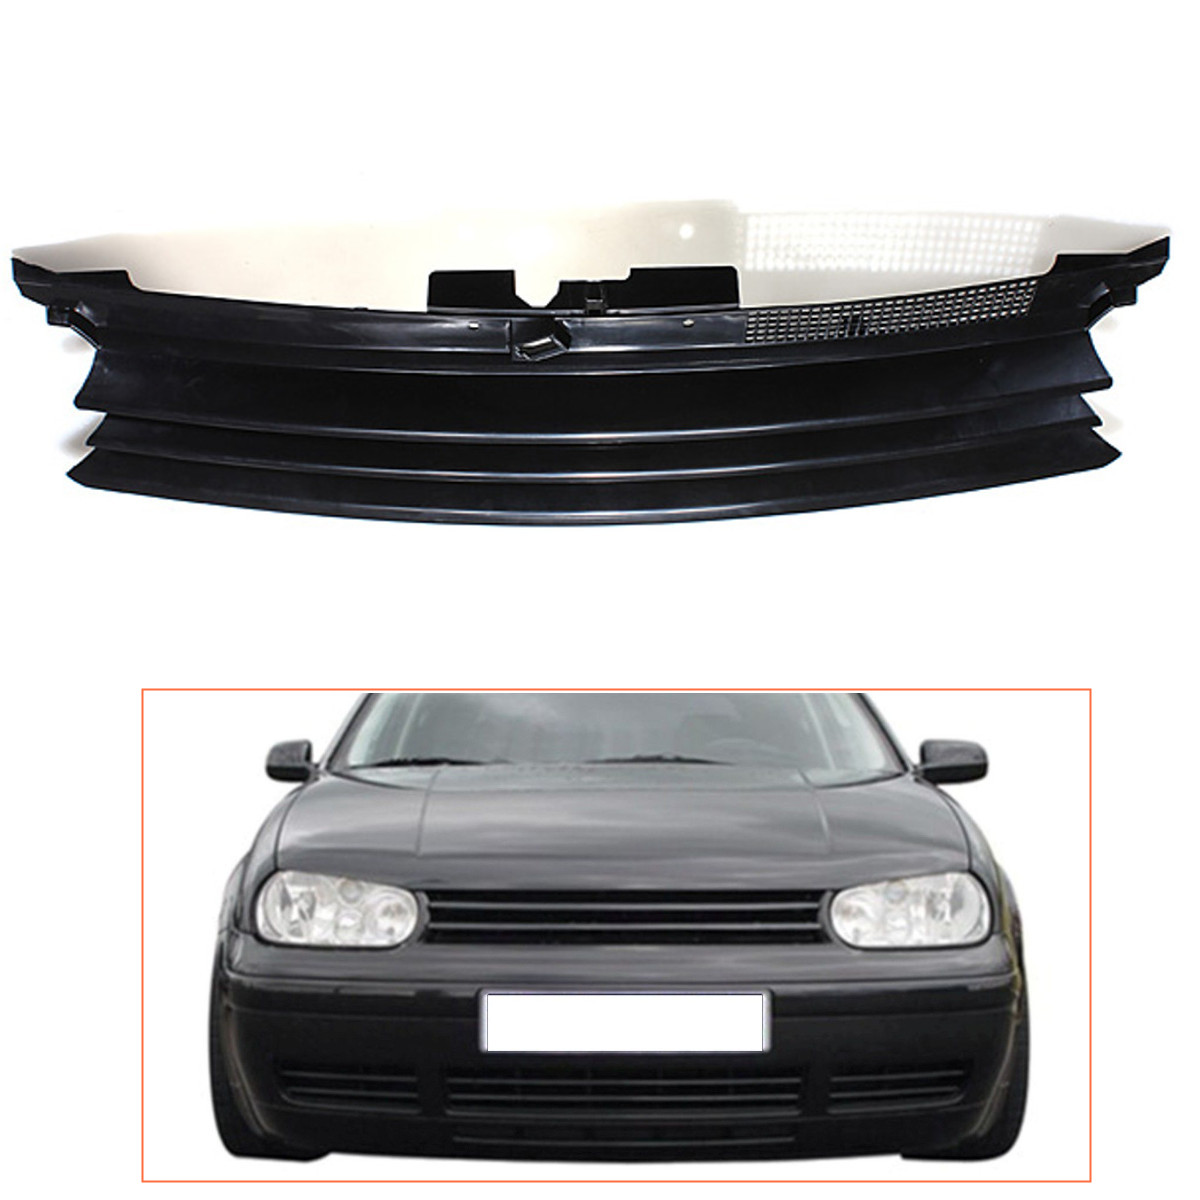 Badgeless Debadged Car Front Hood Sports Grille Grill for VW GOLF 4 MK4 1997-2004